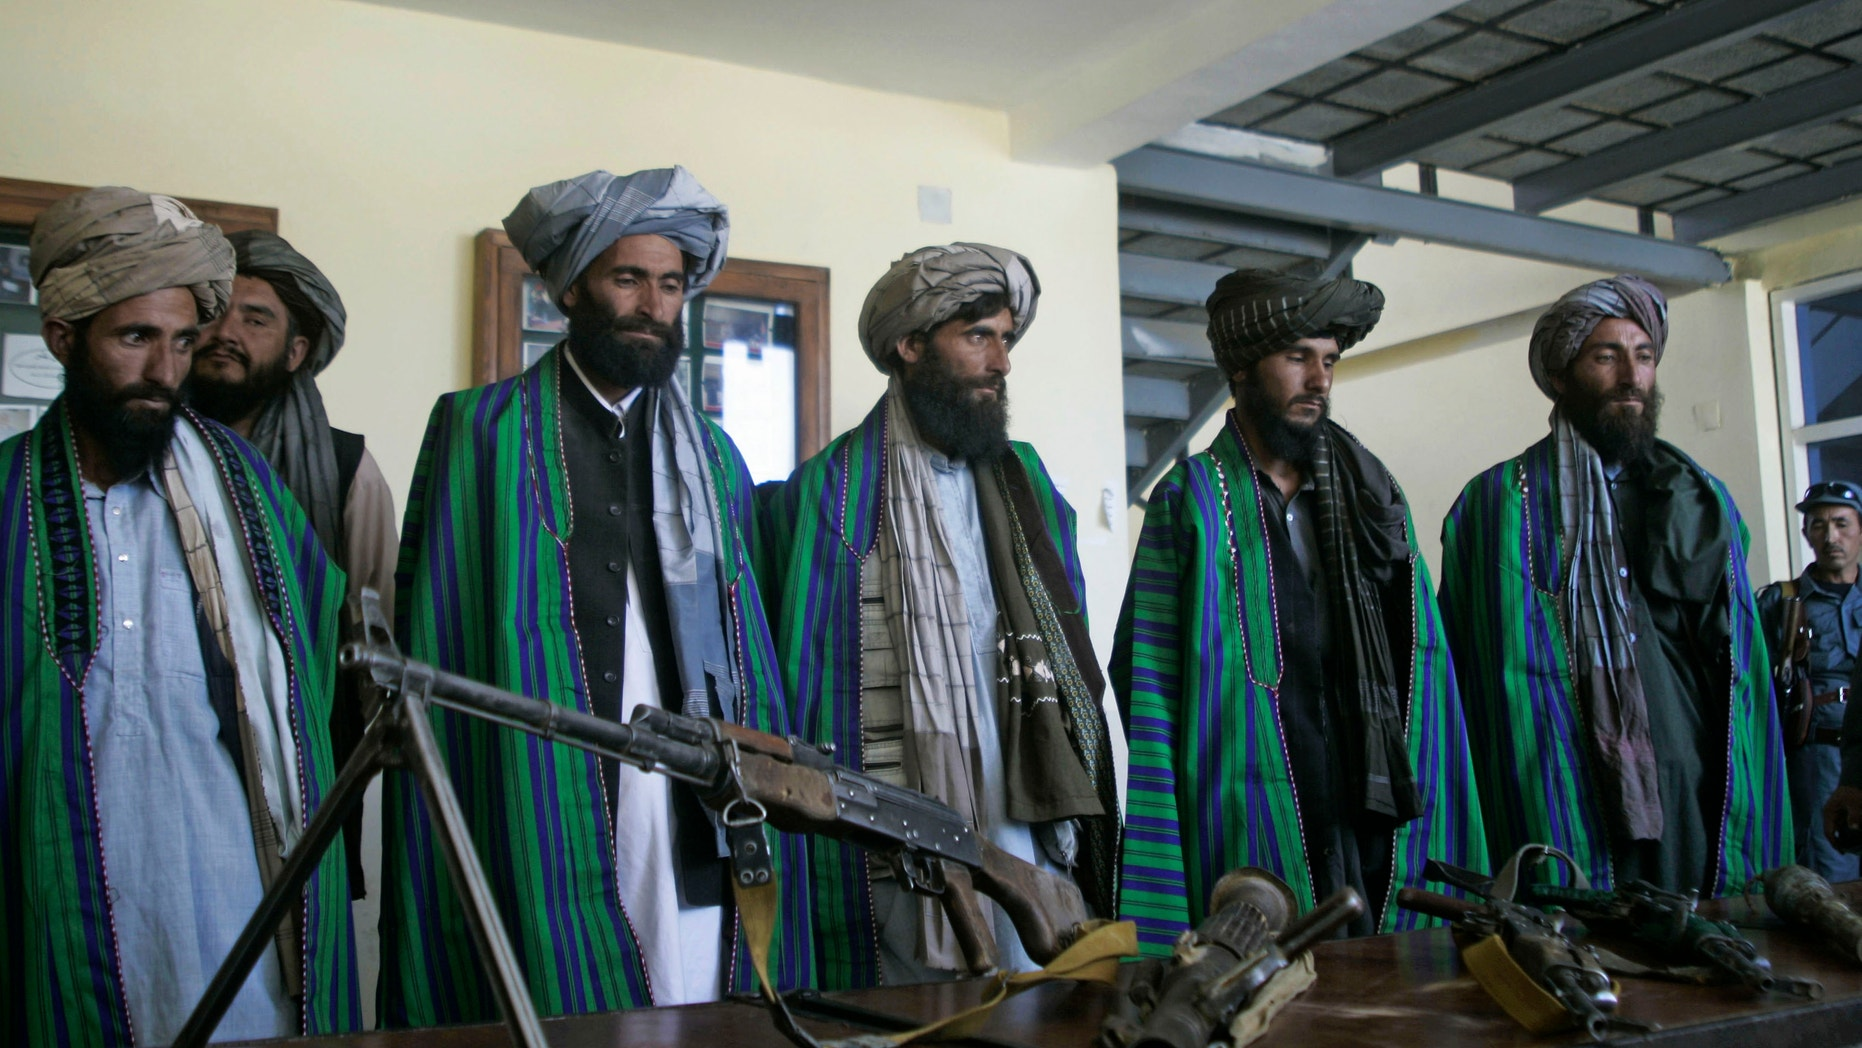 May 13, 2012: Former Taliban fighters hand over their weapons to Afghan police as part of a reconciliation process in Herat, Afghanistan.